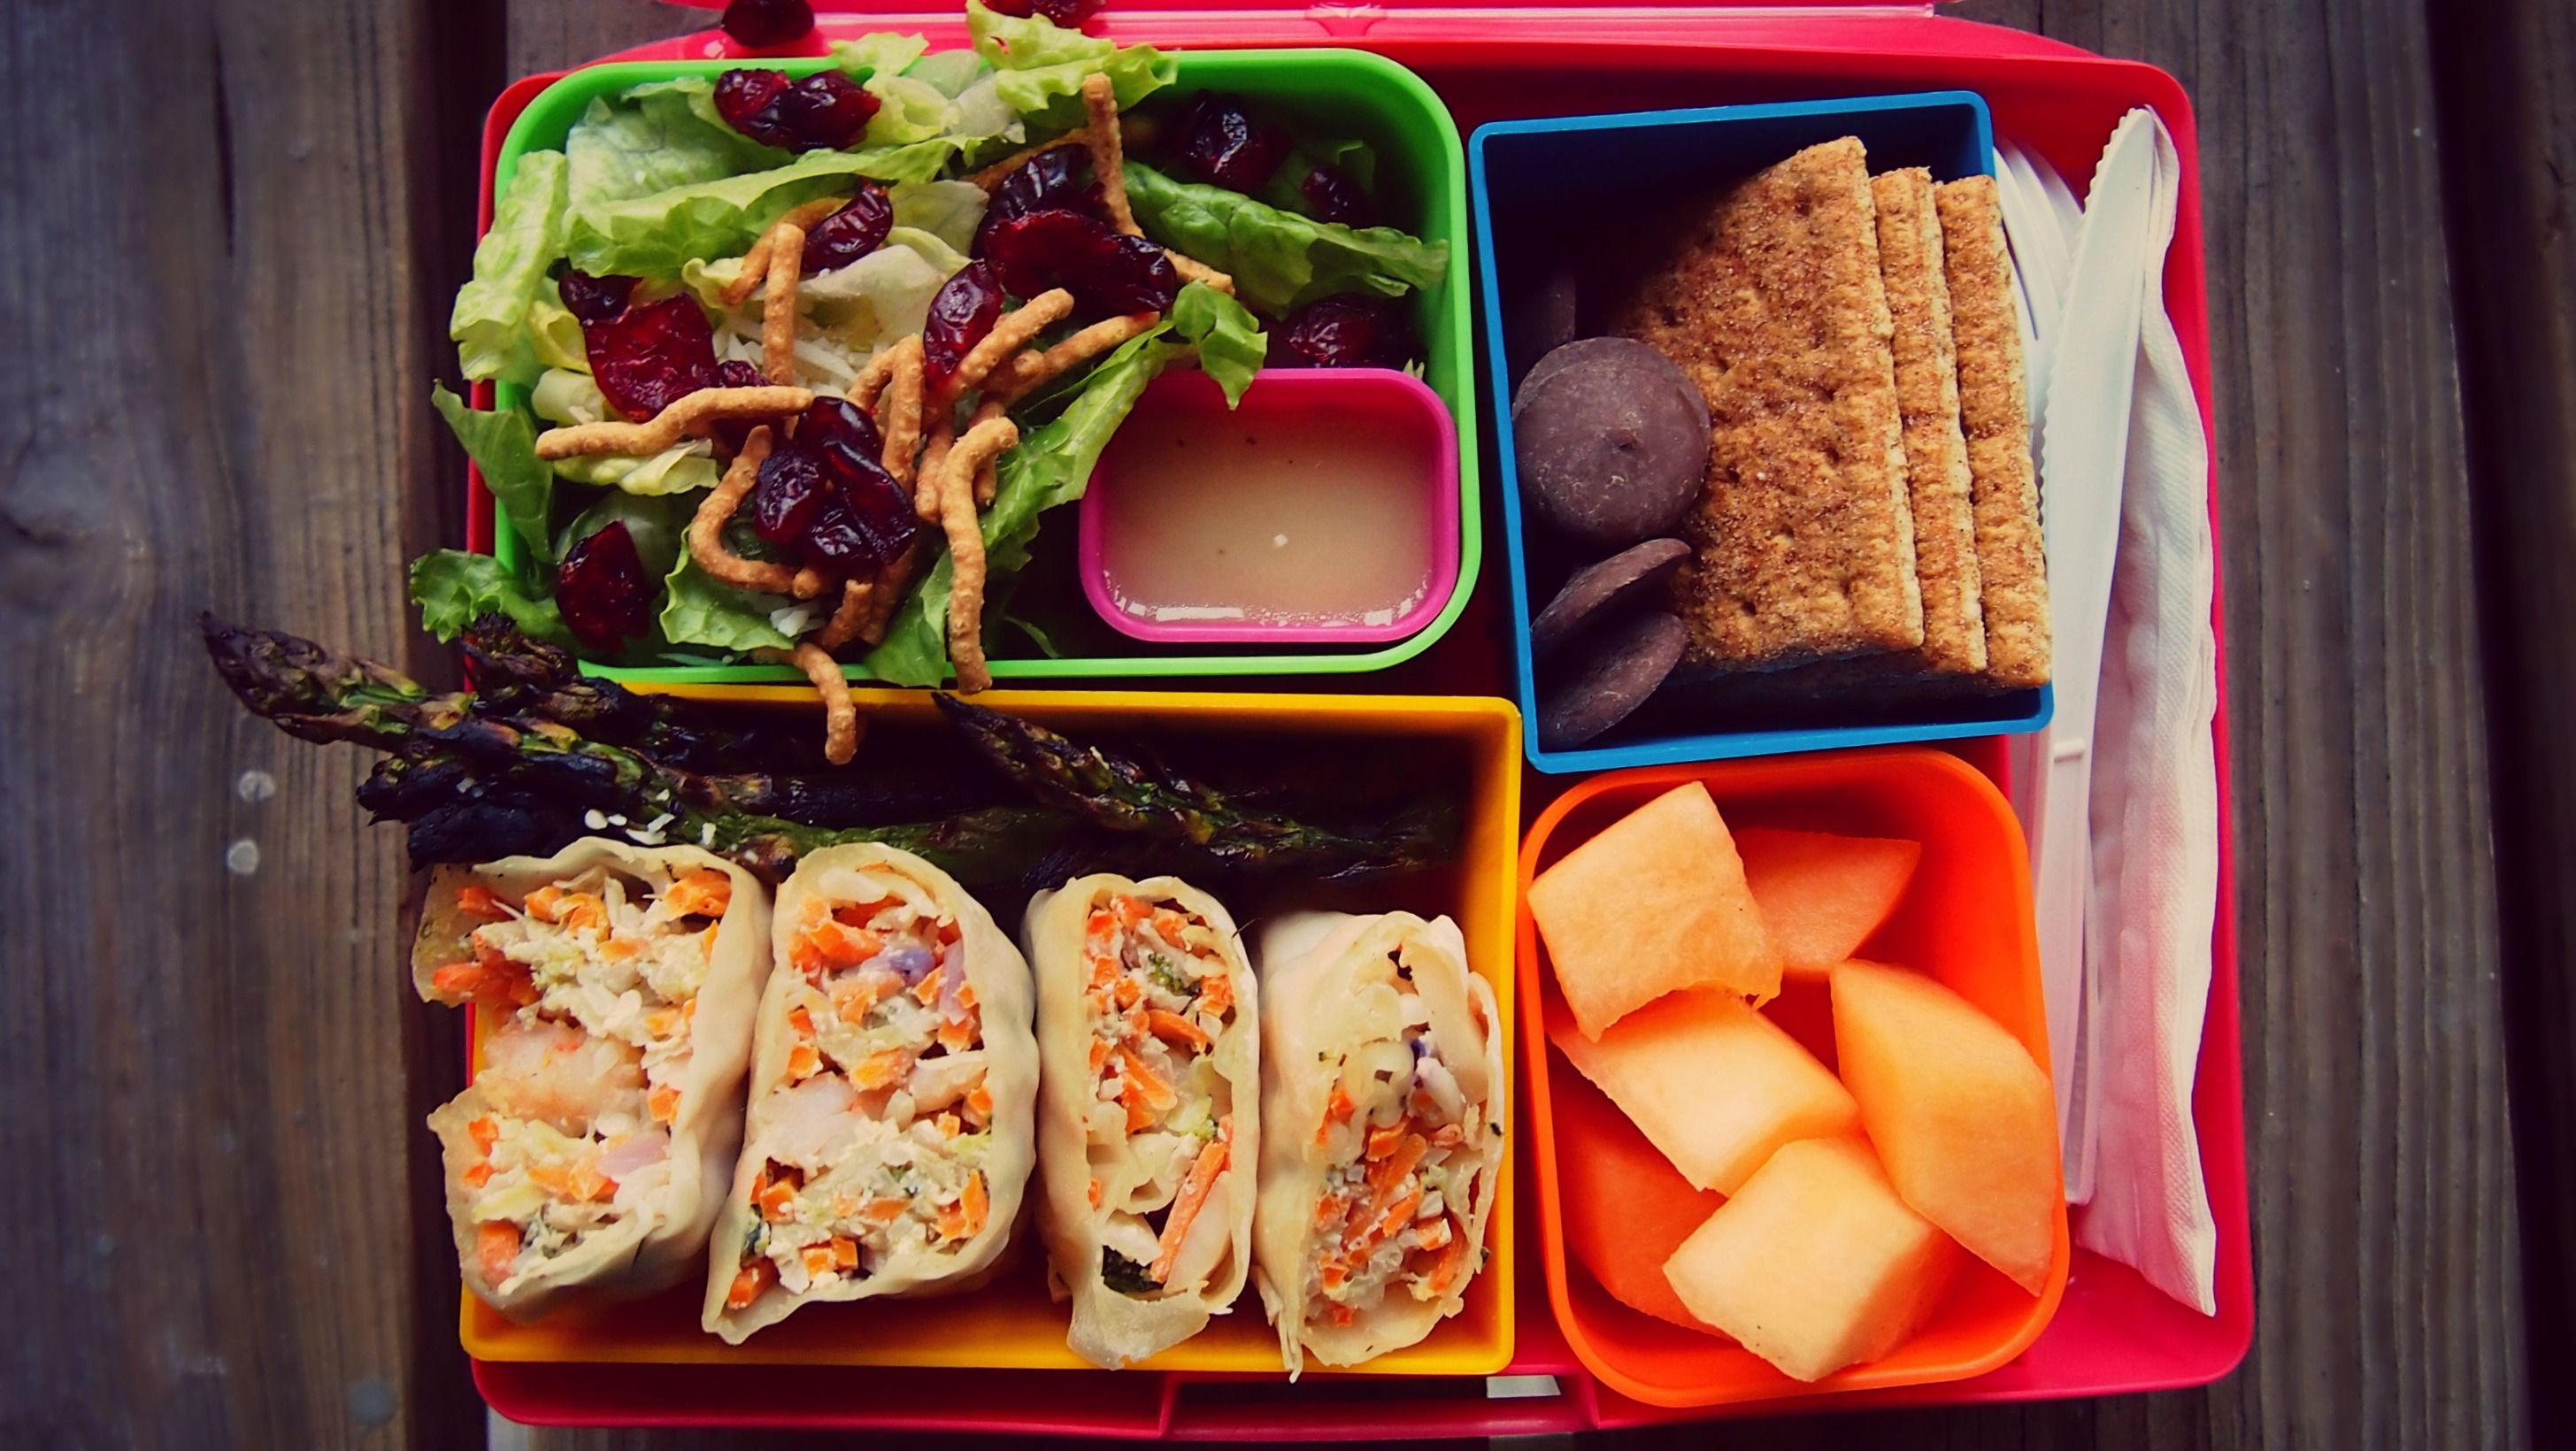 Little lunches - so many ideas! This will def be my take ...